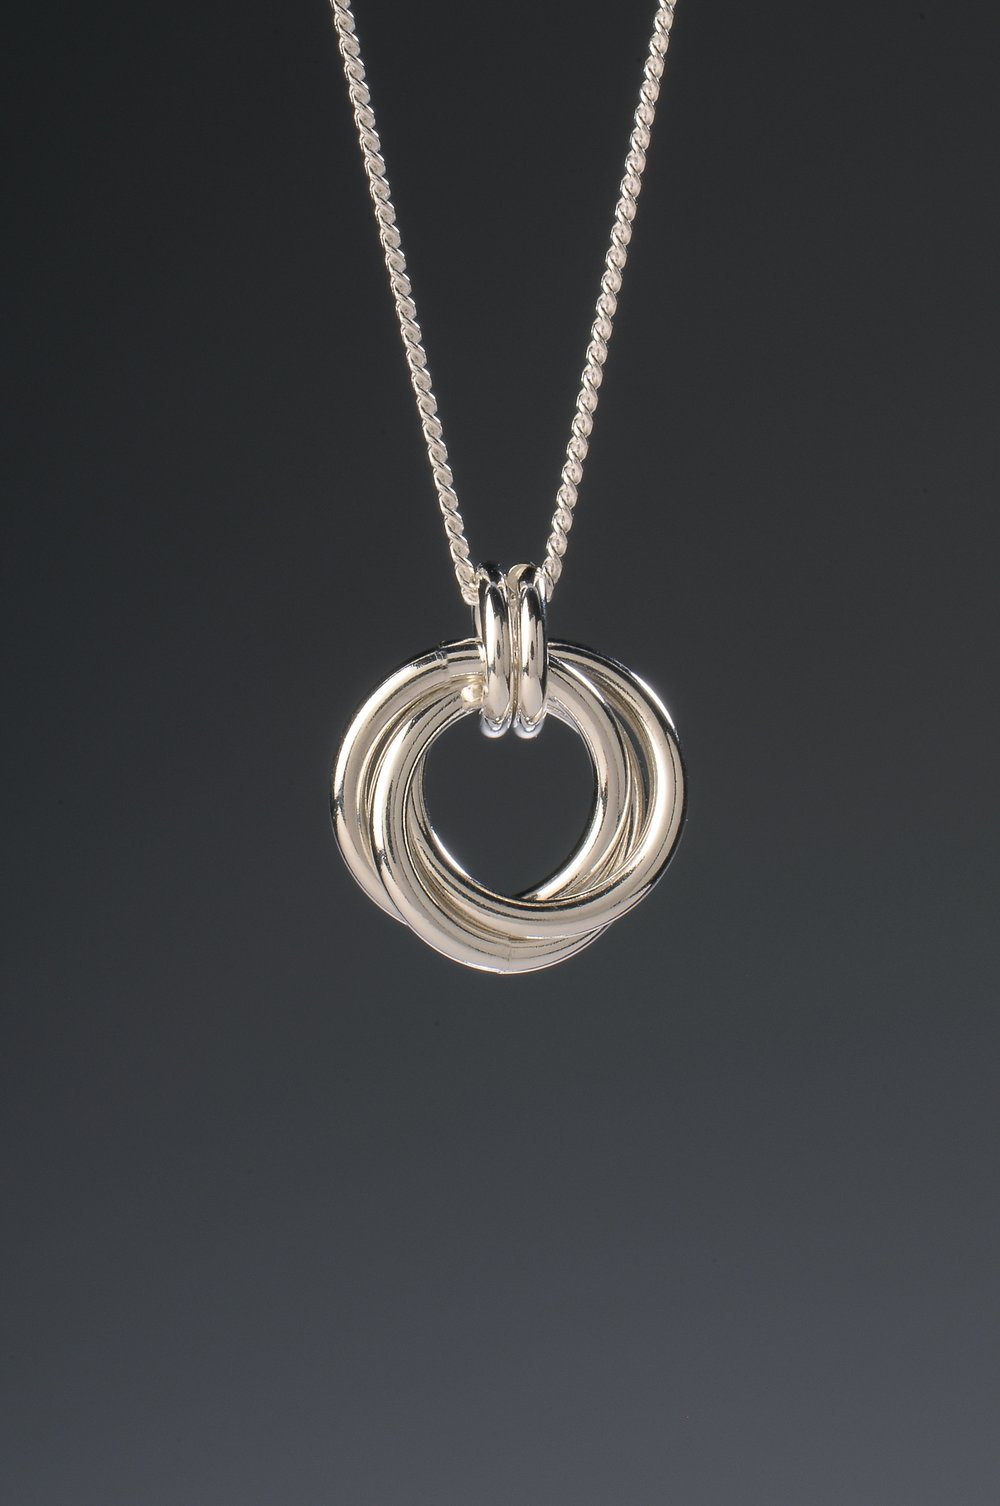 Small Sterling Silver Infinity Pendant